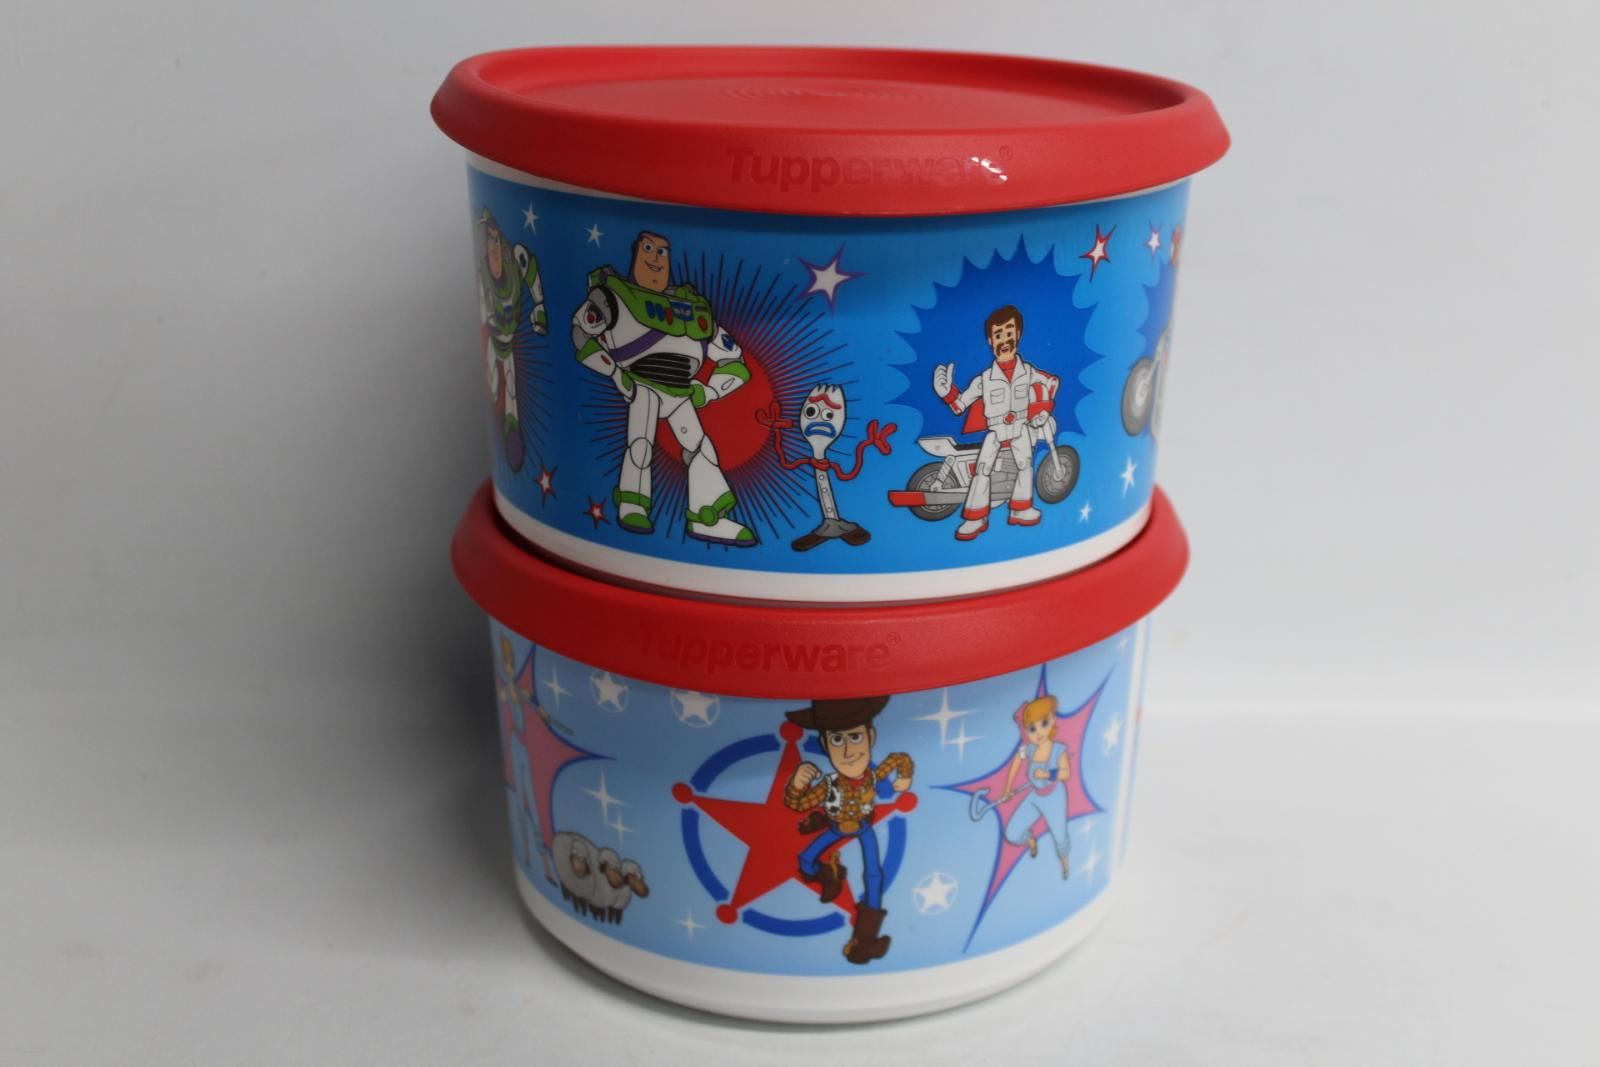 TUPPERWARE-Disney-Toy-Story-4-Movie-Buzz-amp-Woody-Snack-Set-Canisters-1-4L-NEW